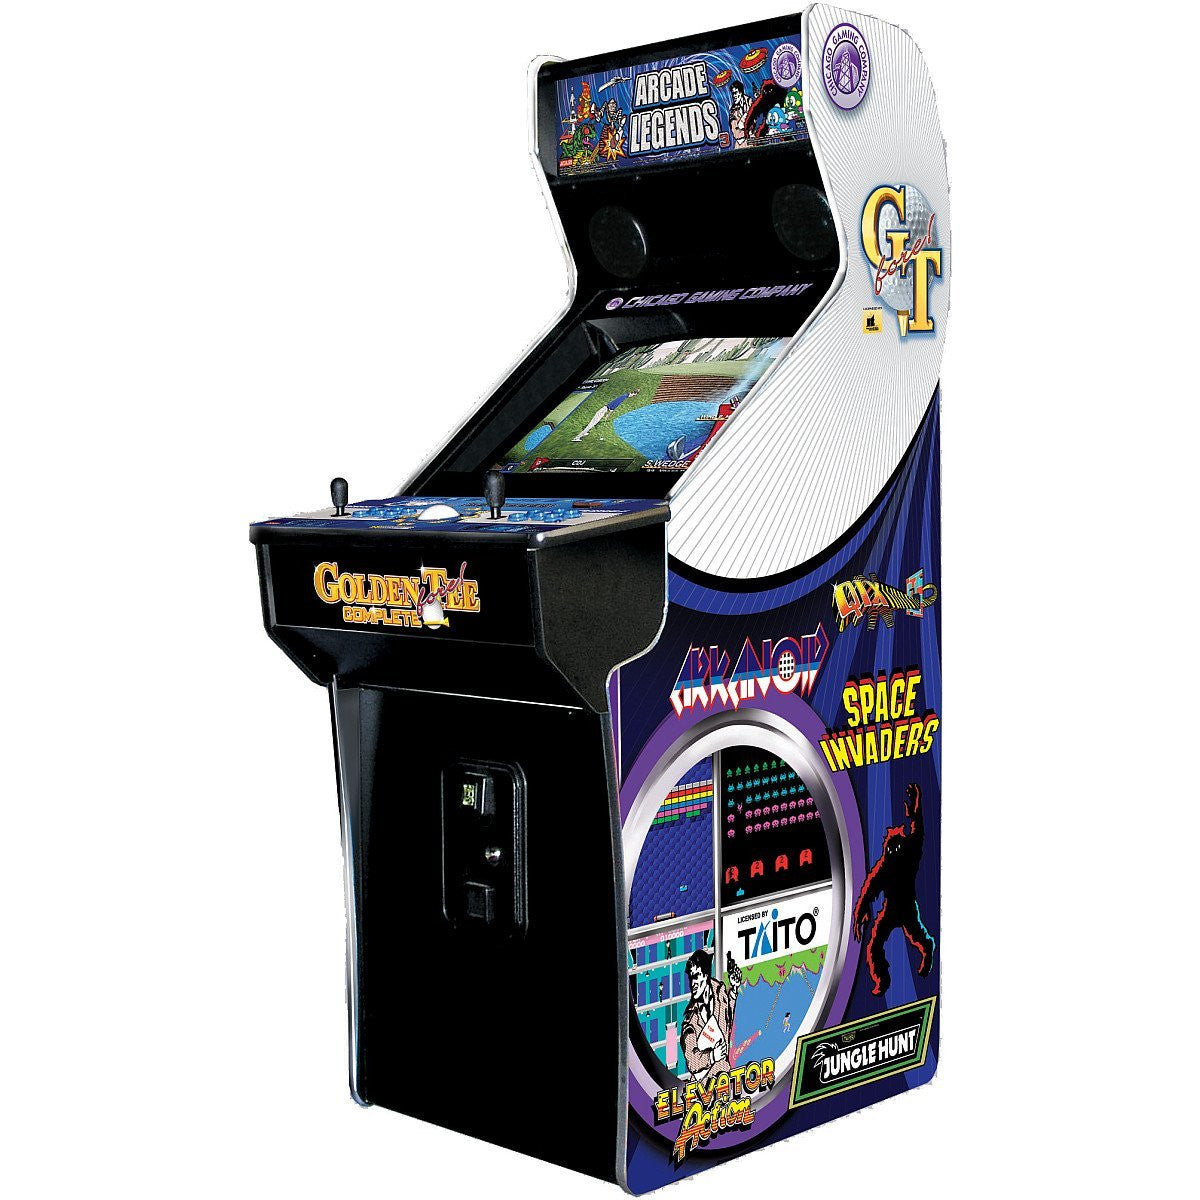 Golden Tee Cabinet Chicago Gaming Arcade Legends 3 Arcade Game With 130 Games And